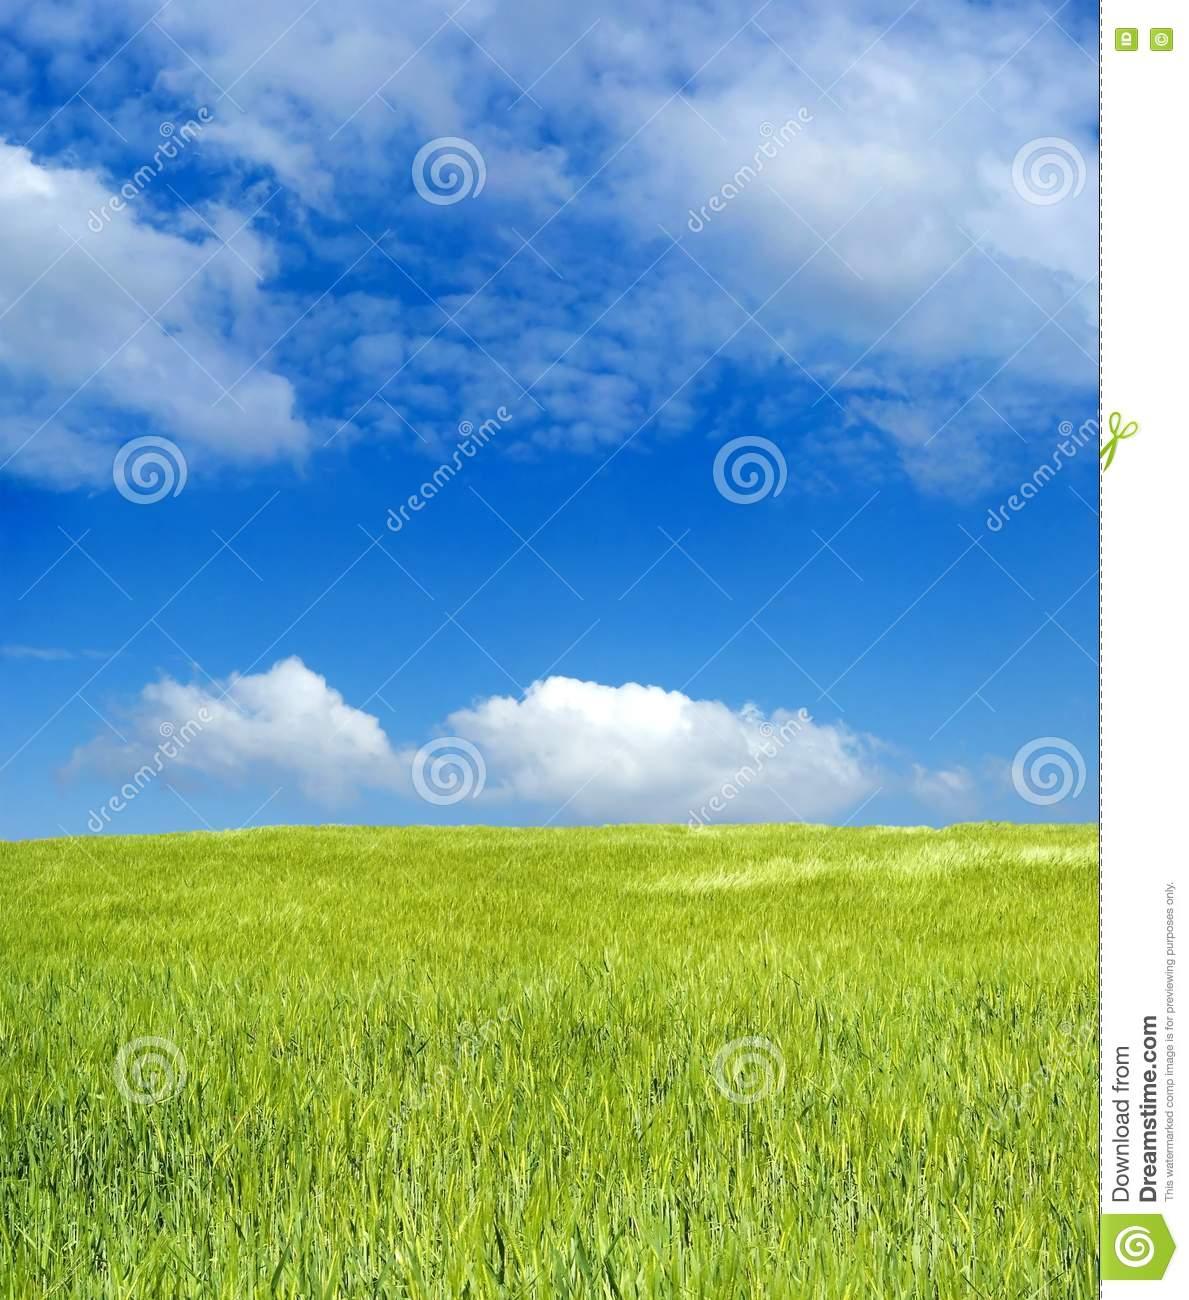 de827b710a4 Free Stock Photo  Barley Field Over Blue Sky Picture. Image  2338715